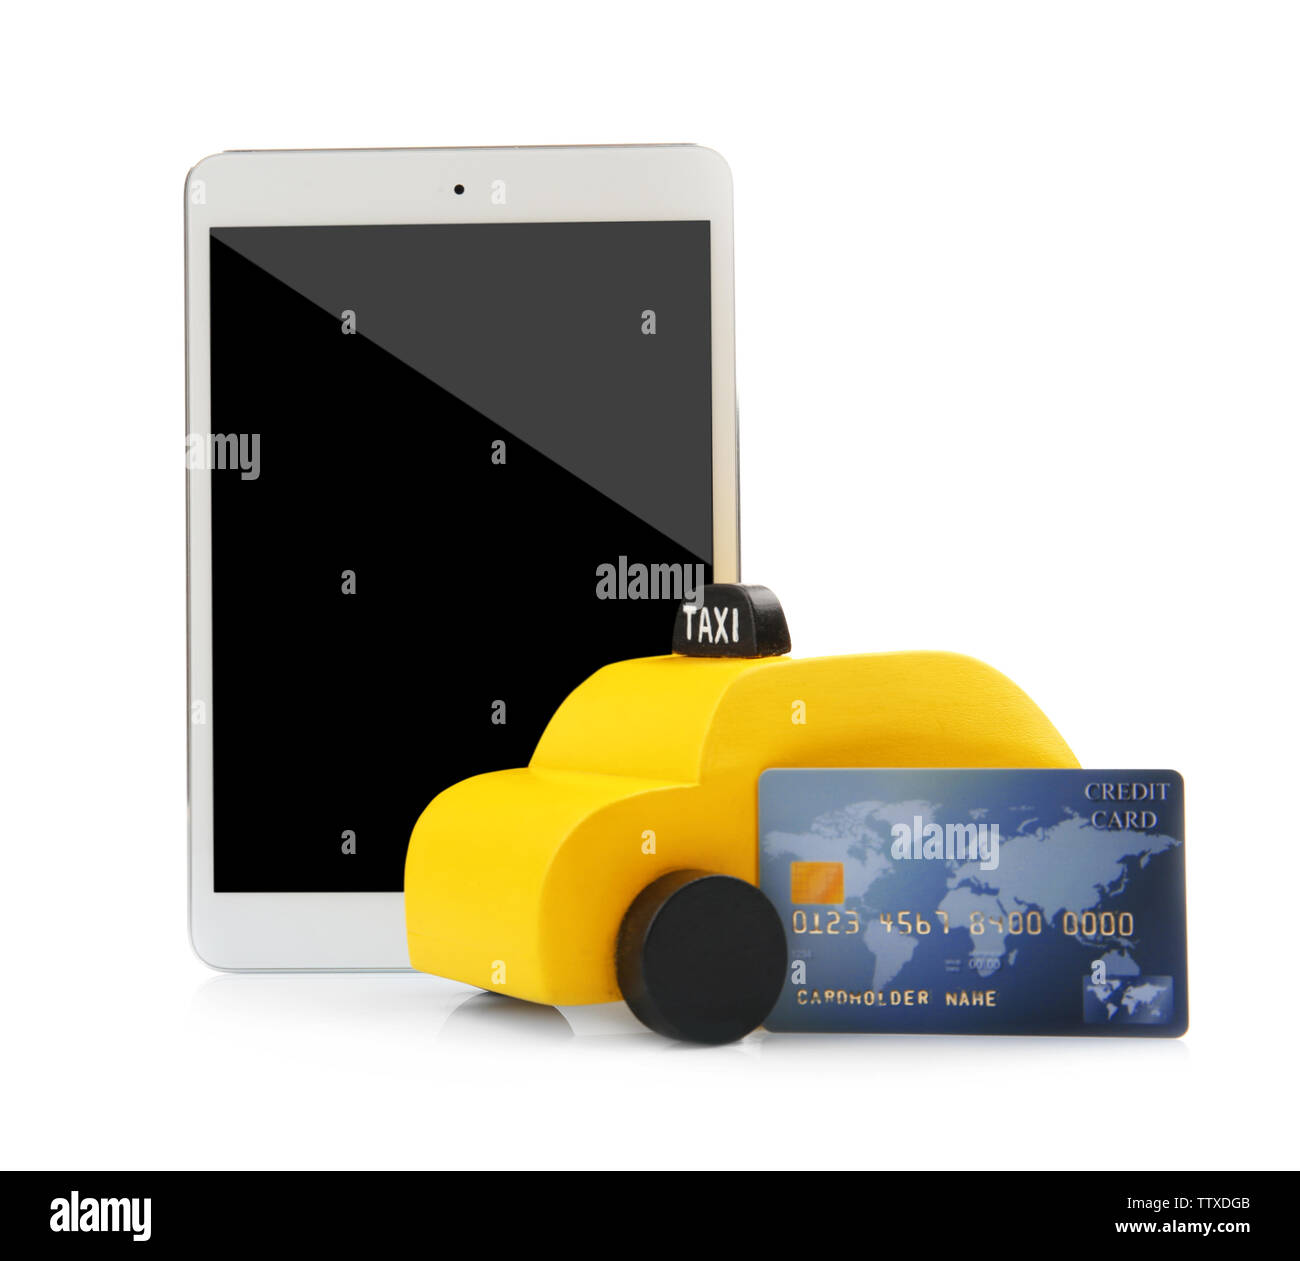 Yellow toy taxi cab, tablet and credit card isolated on white - Stock Image